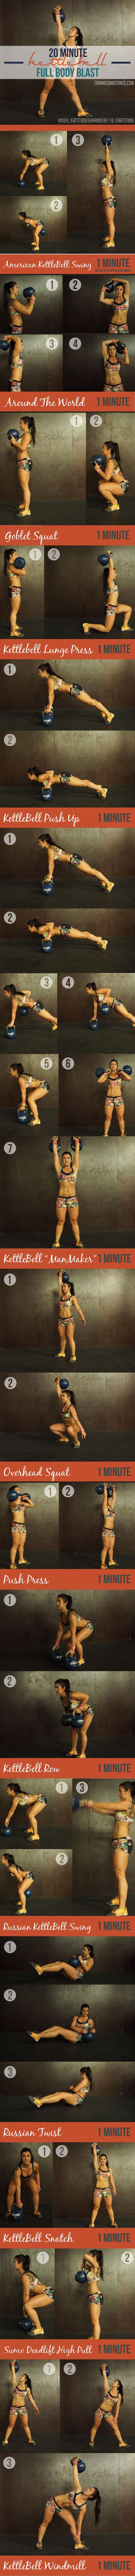 20 Minute Full Body Fat Loss Kettlebell Workout Circuit! Find more like this at gympins.com #kettlebell | Repinned www.pinterest.com/muskelfarm/